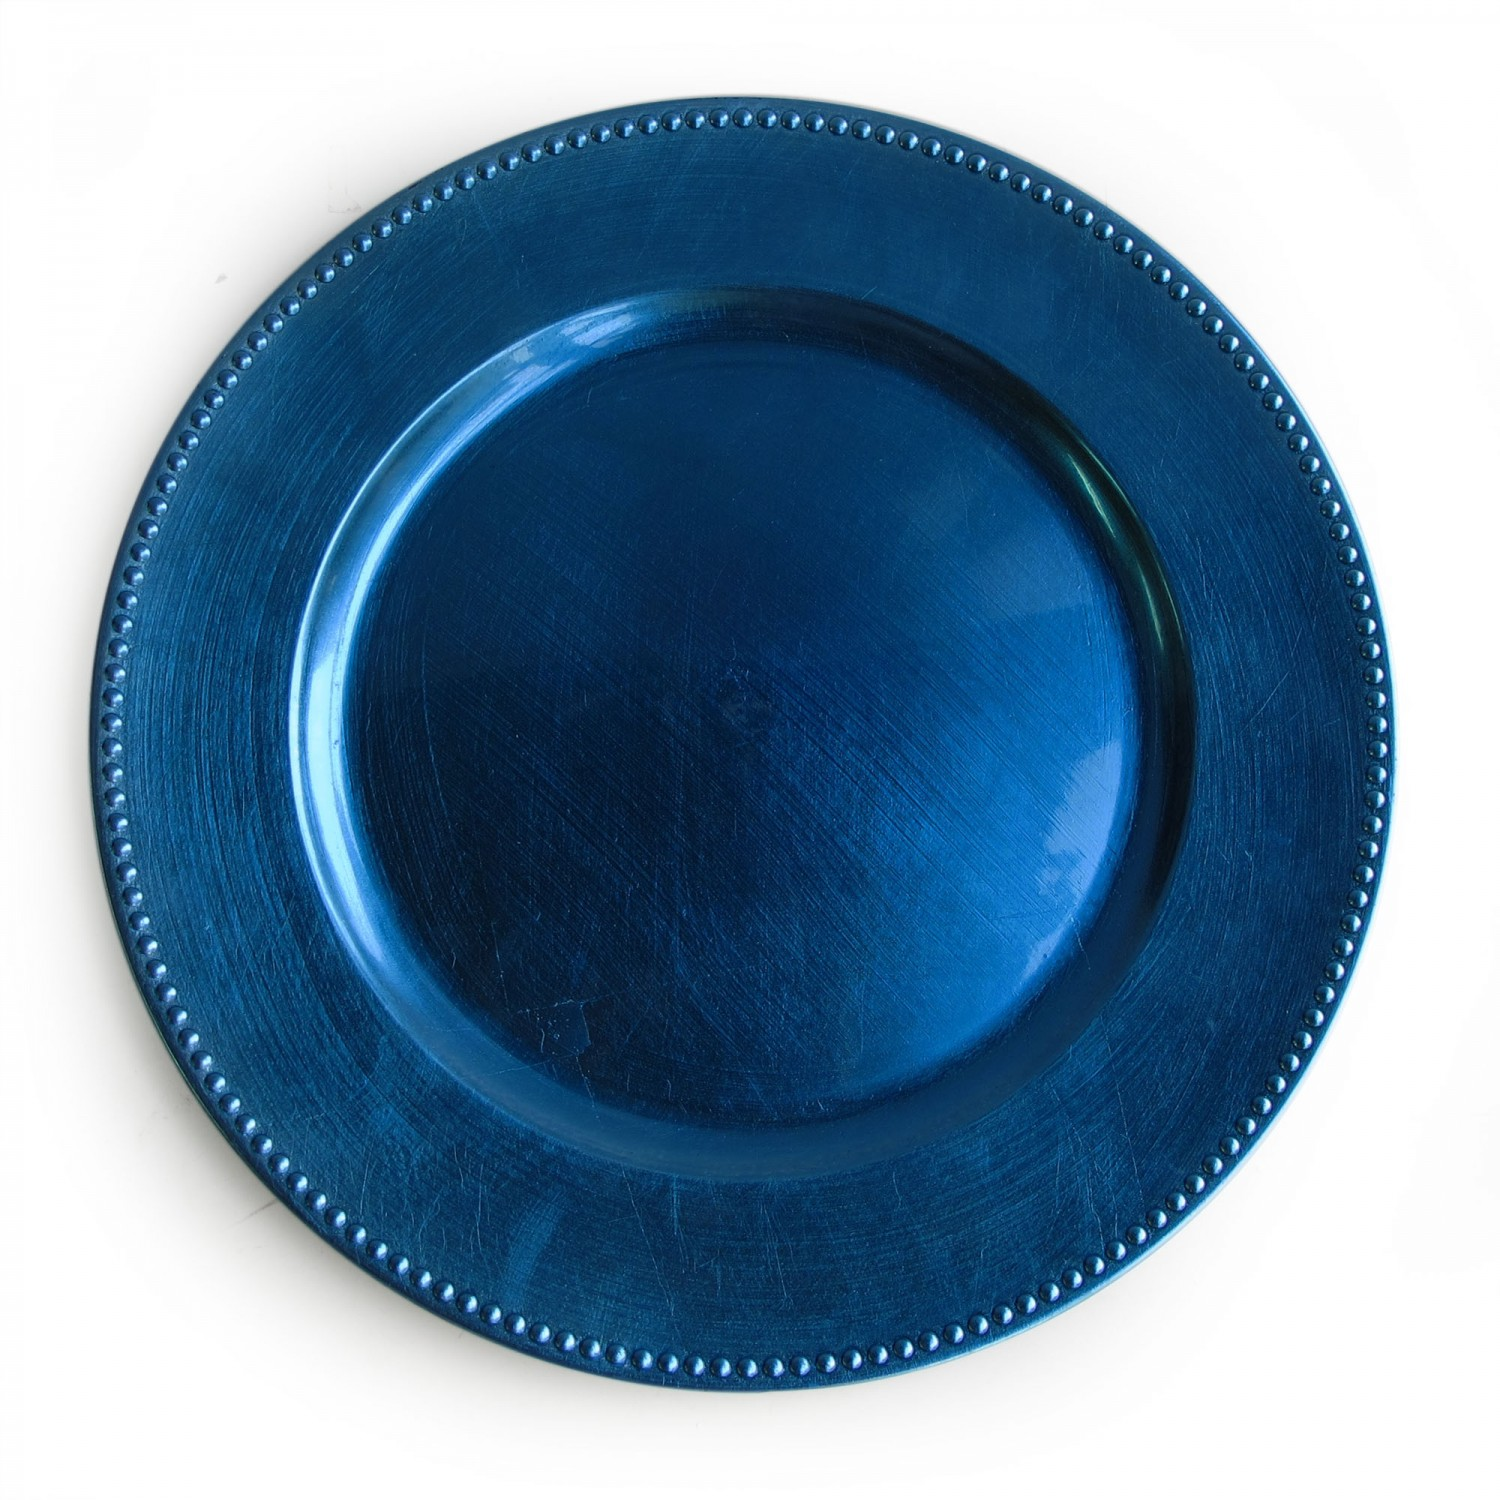 The Jay Companies 1270168 Round Royal Blue Beaded Charger Plate 13&